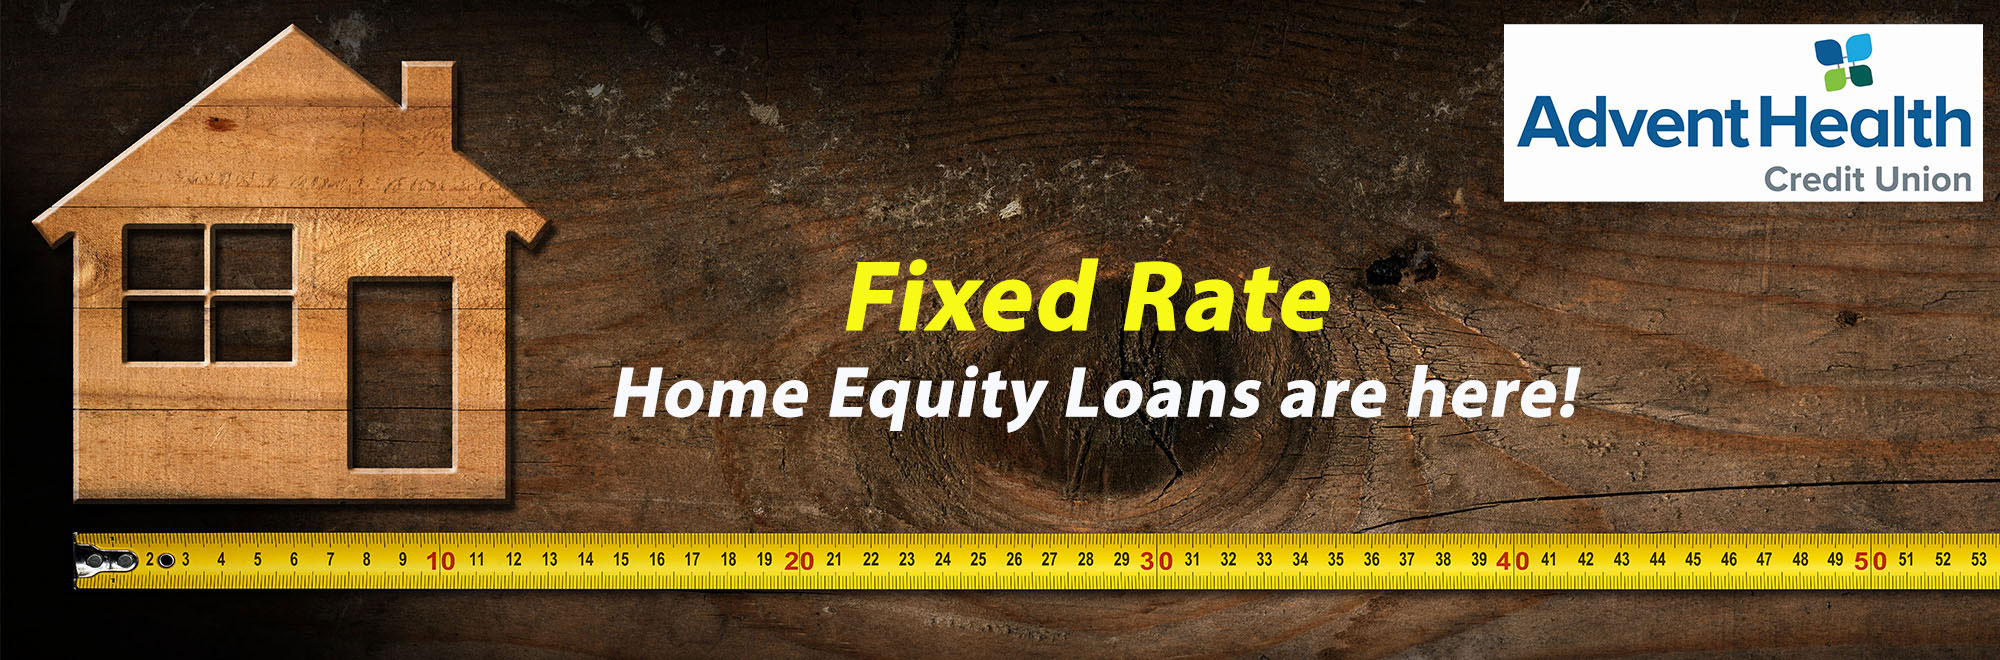 Fixed rate home equity loans are here